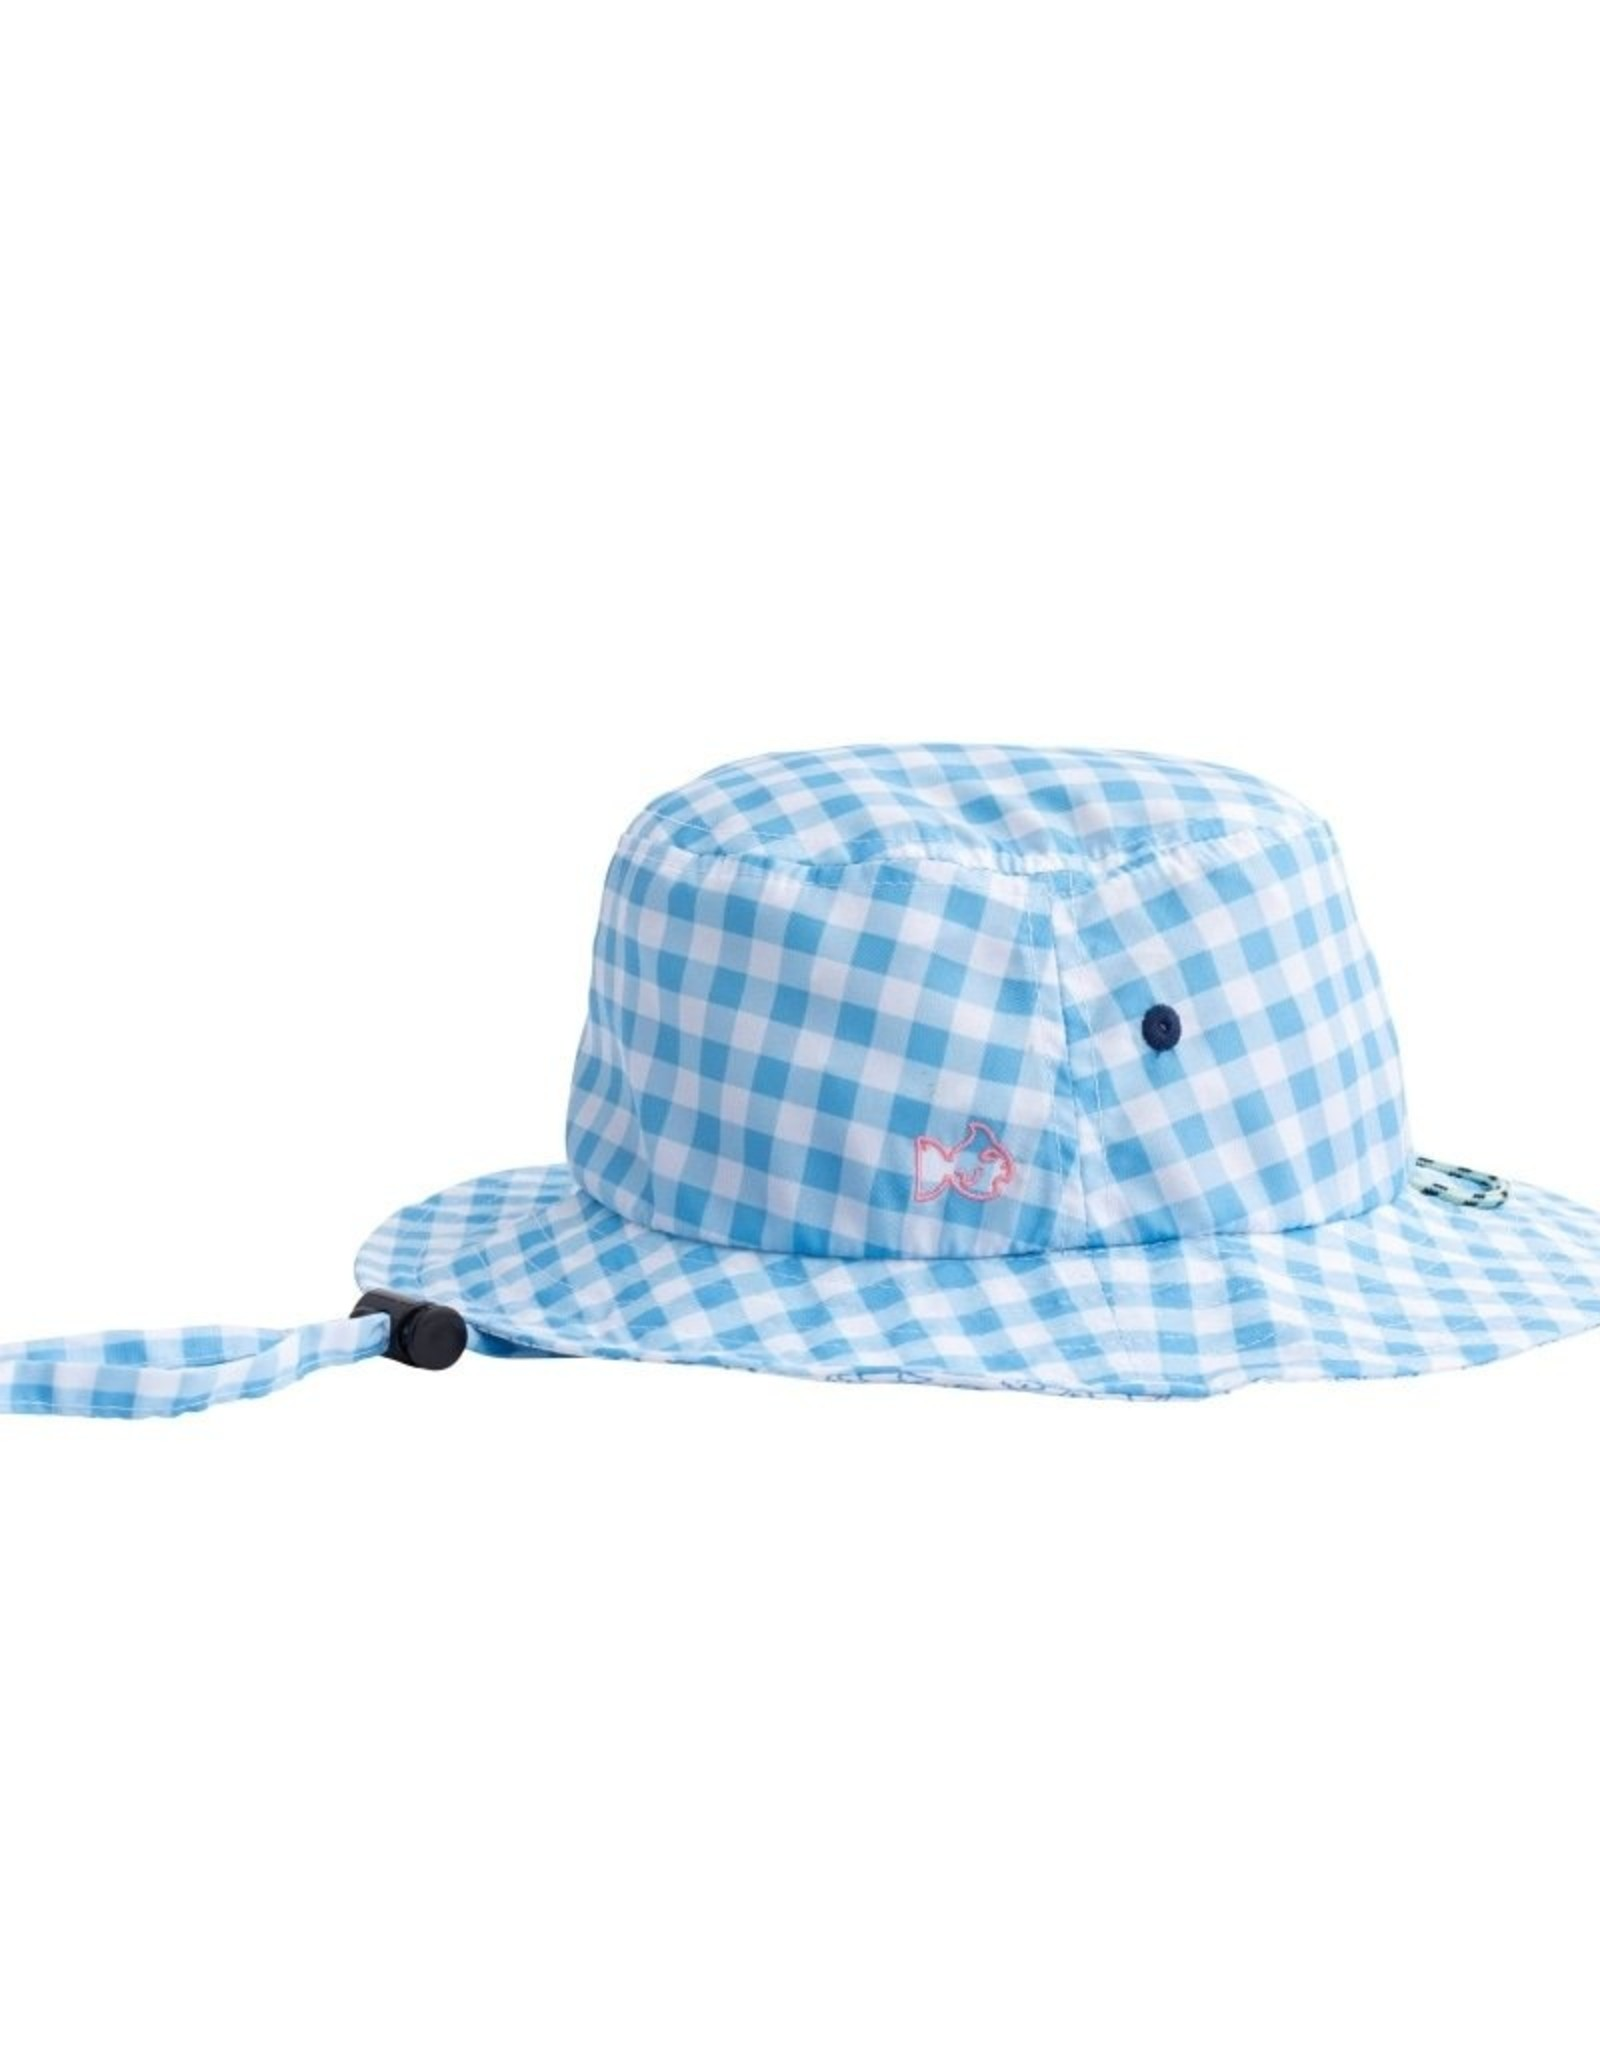 Prodoh Blue Perennial Performance Bucket Hat in Gingham